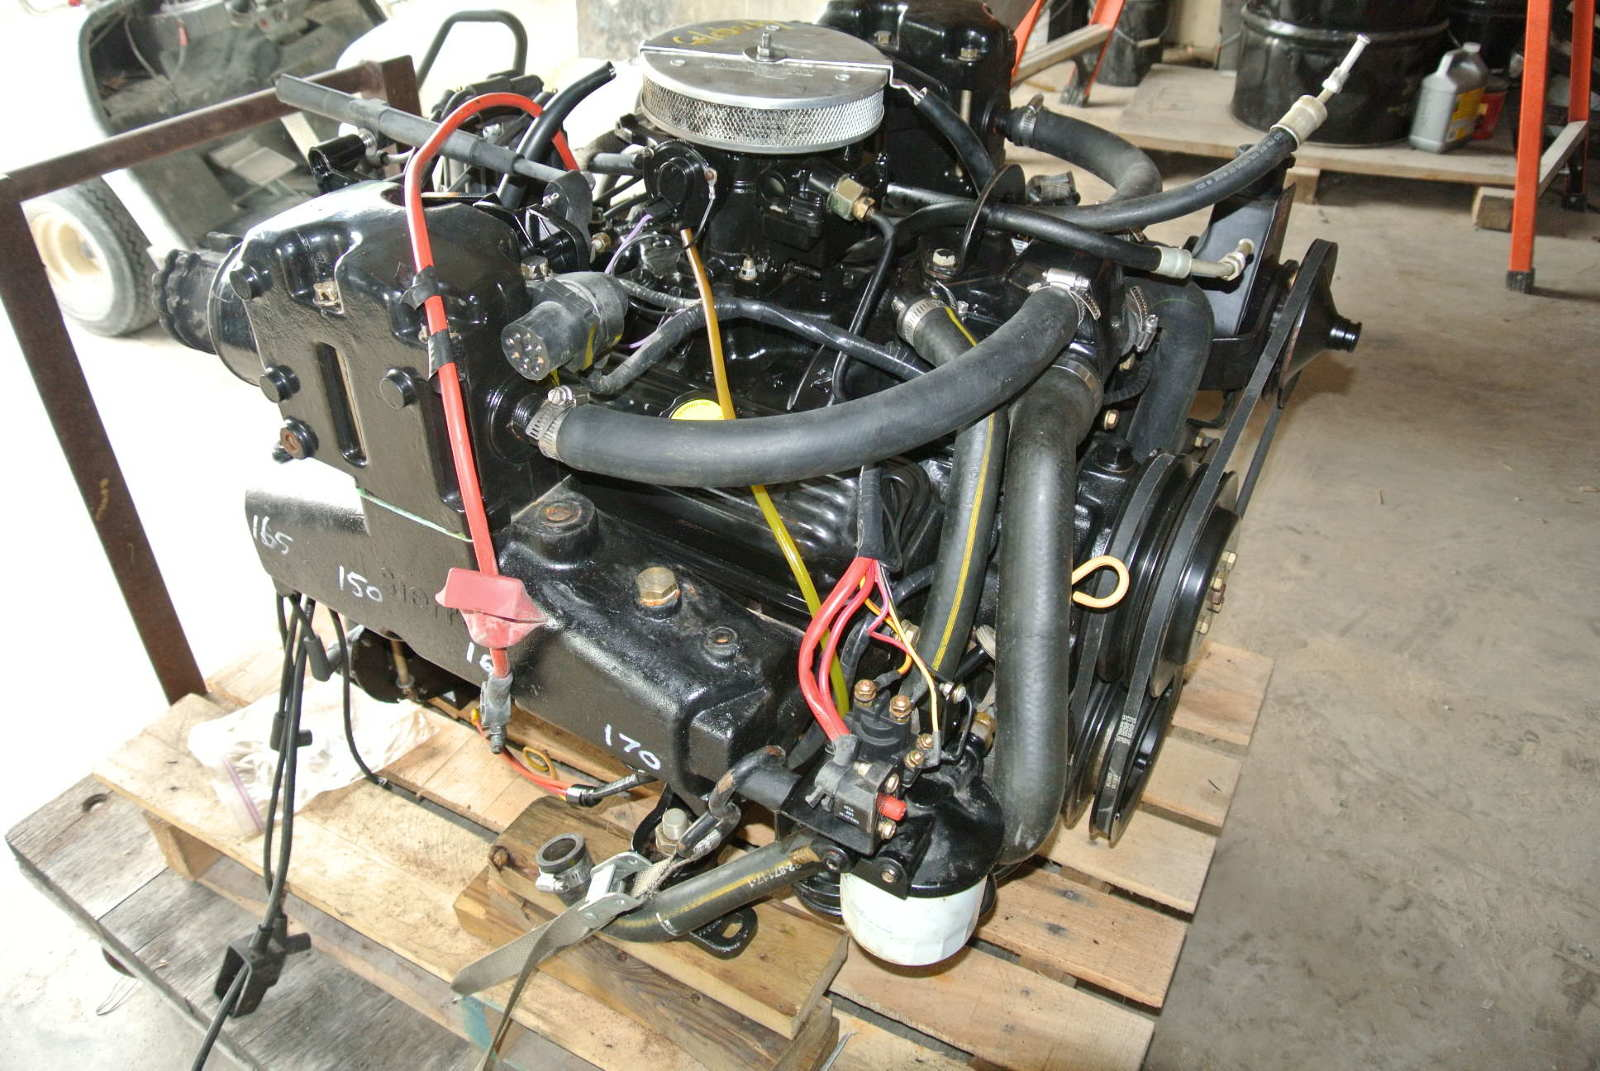 5364 mercruiser 50 engine v8 chevy 305 motor complete plug n go mercruiser 5 0 engine v8 chevy 305 motor complete plug n go Mercruiser Thunderbolt Ignition Wiring Diagram at edmiracle.co